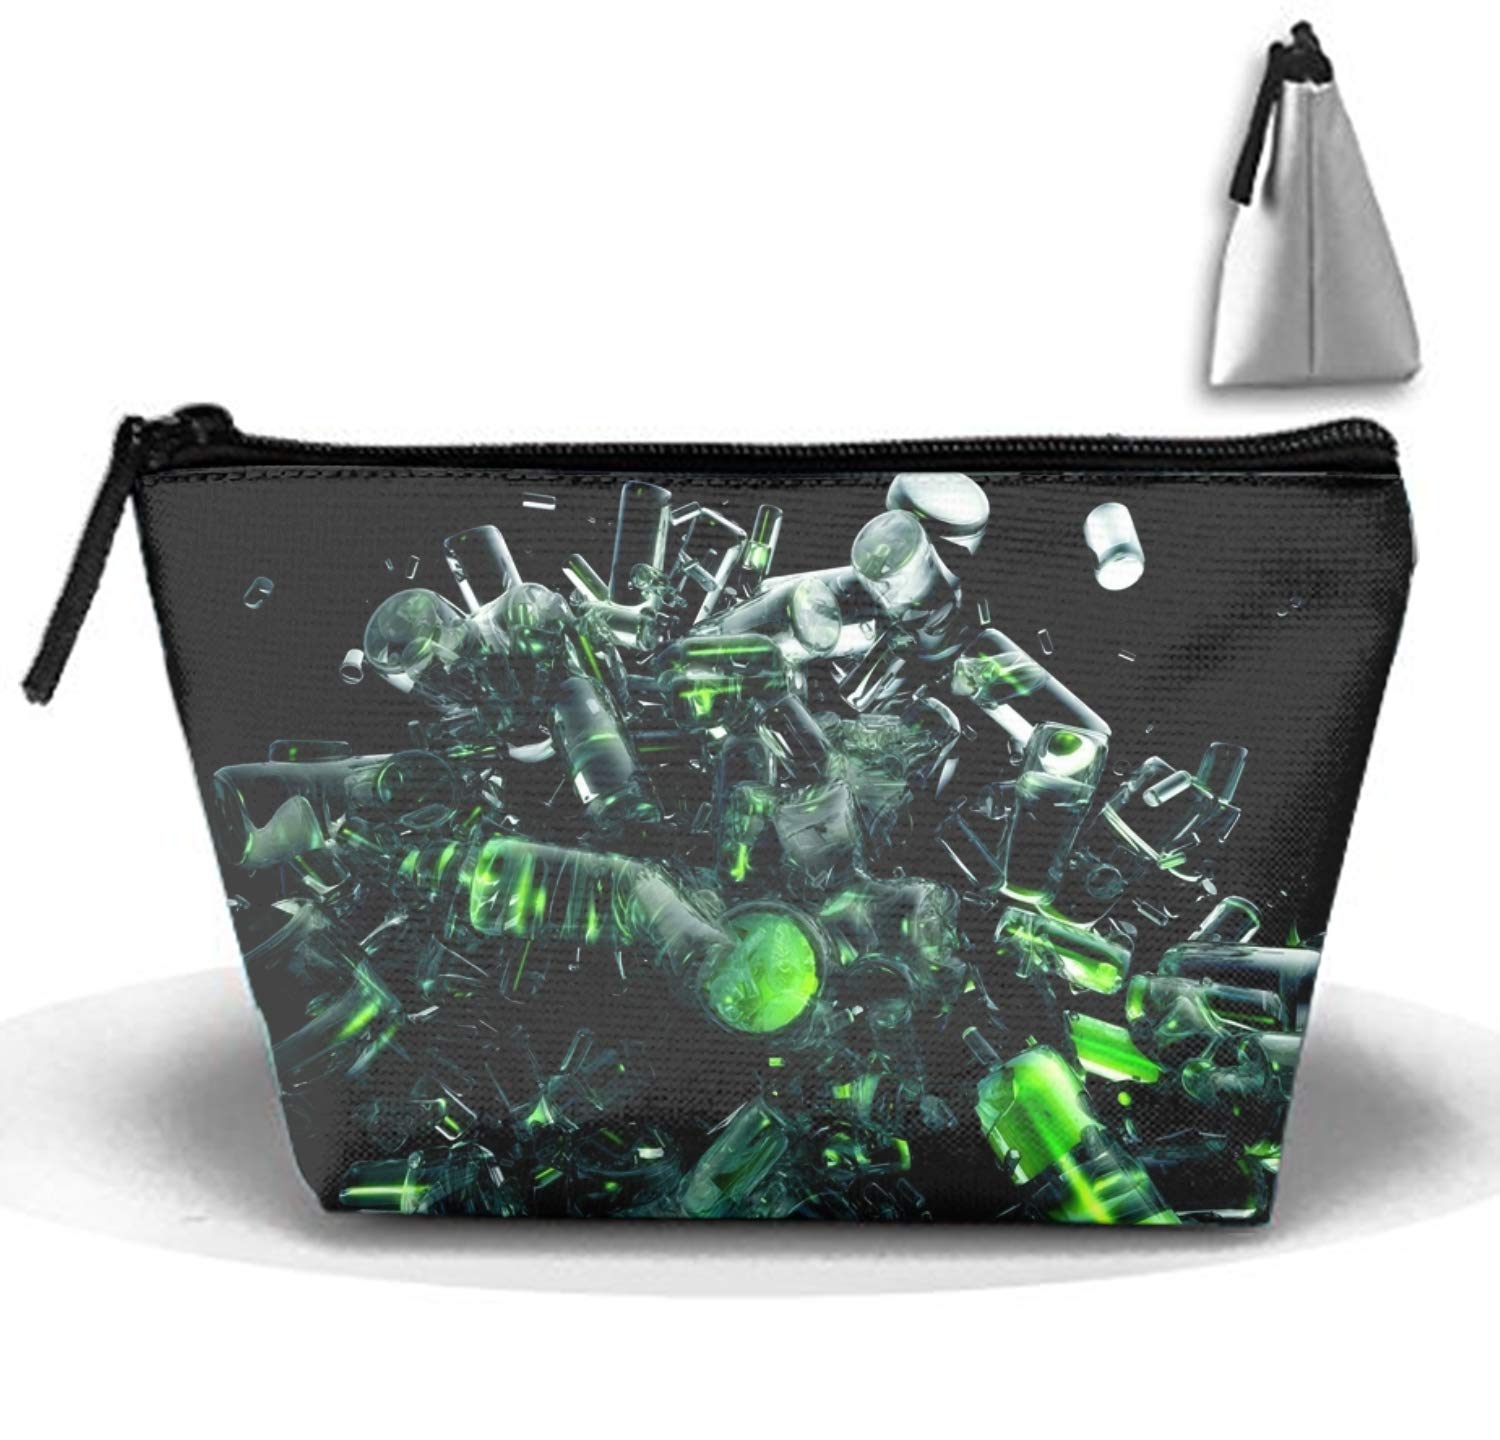 Amazon.com : Multi-functional Small Hand-Held Trapezoidal Strorege Bag Travel Cosmetic Bag (Cool Abstract) : Beauty